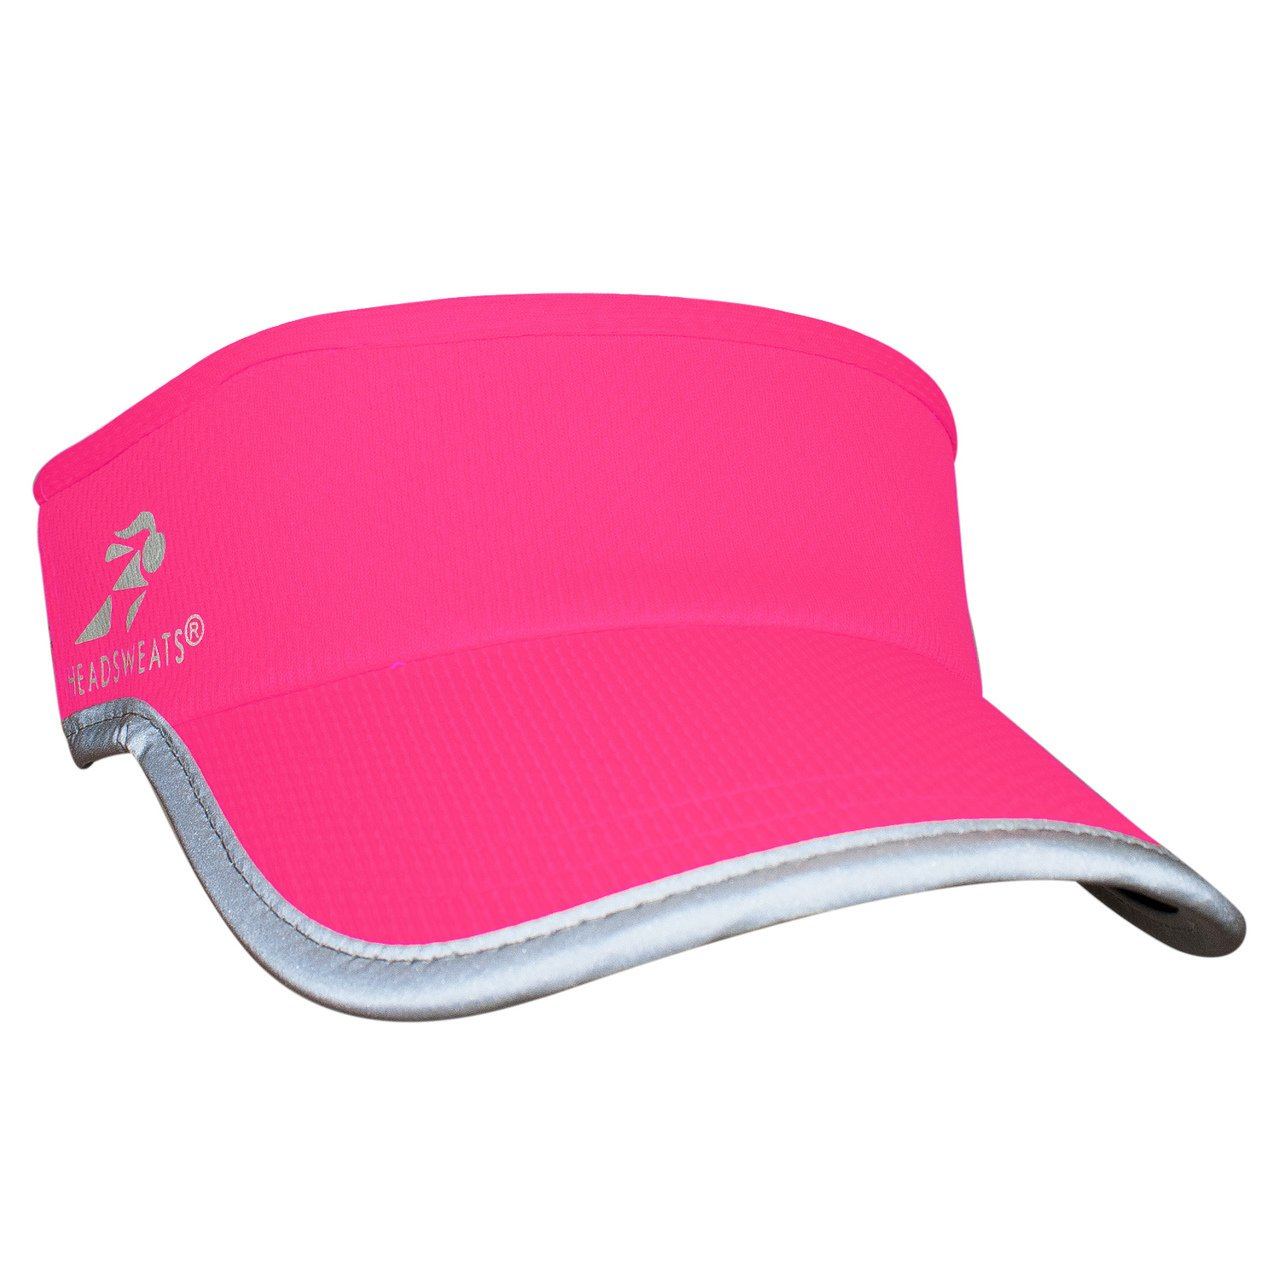 Headsweats Supervisor High Visibility Neon Pink Reflective by Headsweats